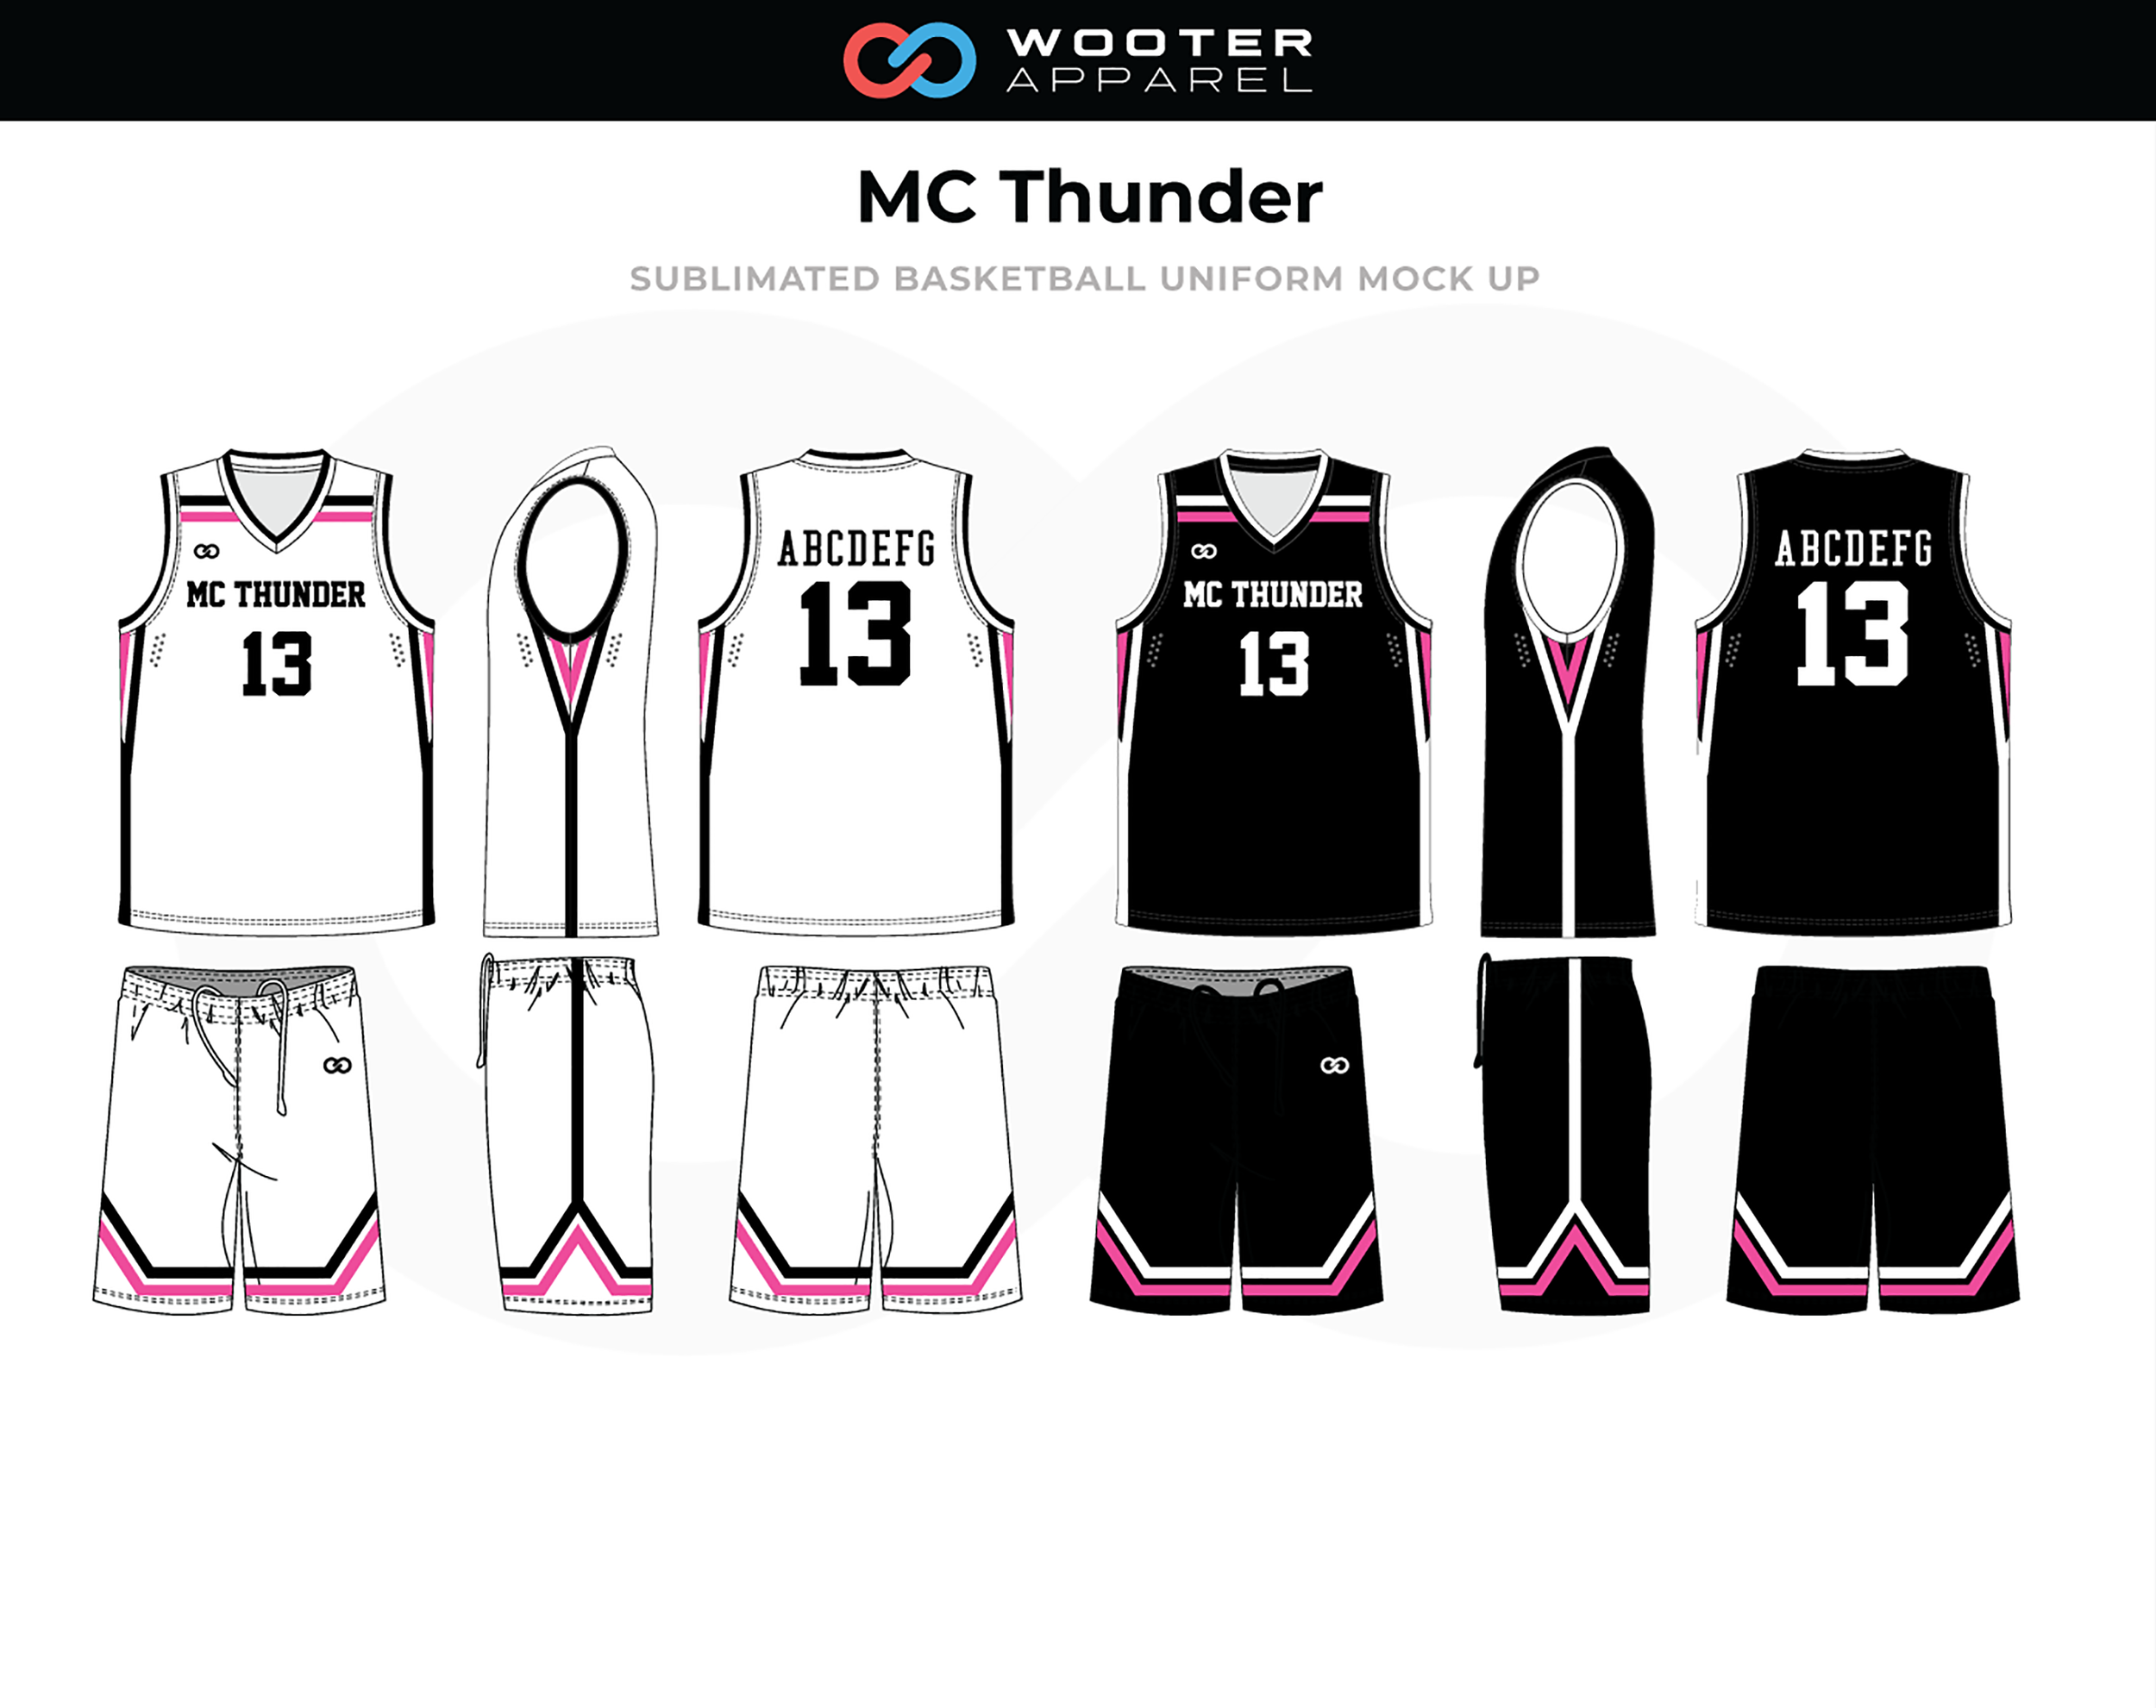 MC THUNDER Black White Red Basketball Uniform, Jersey and Shorts